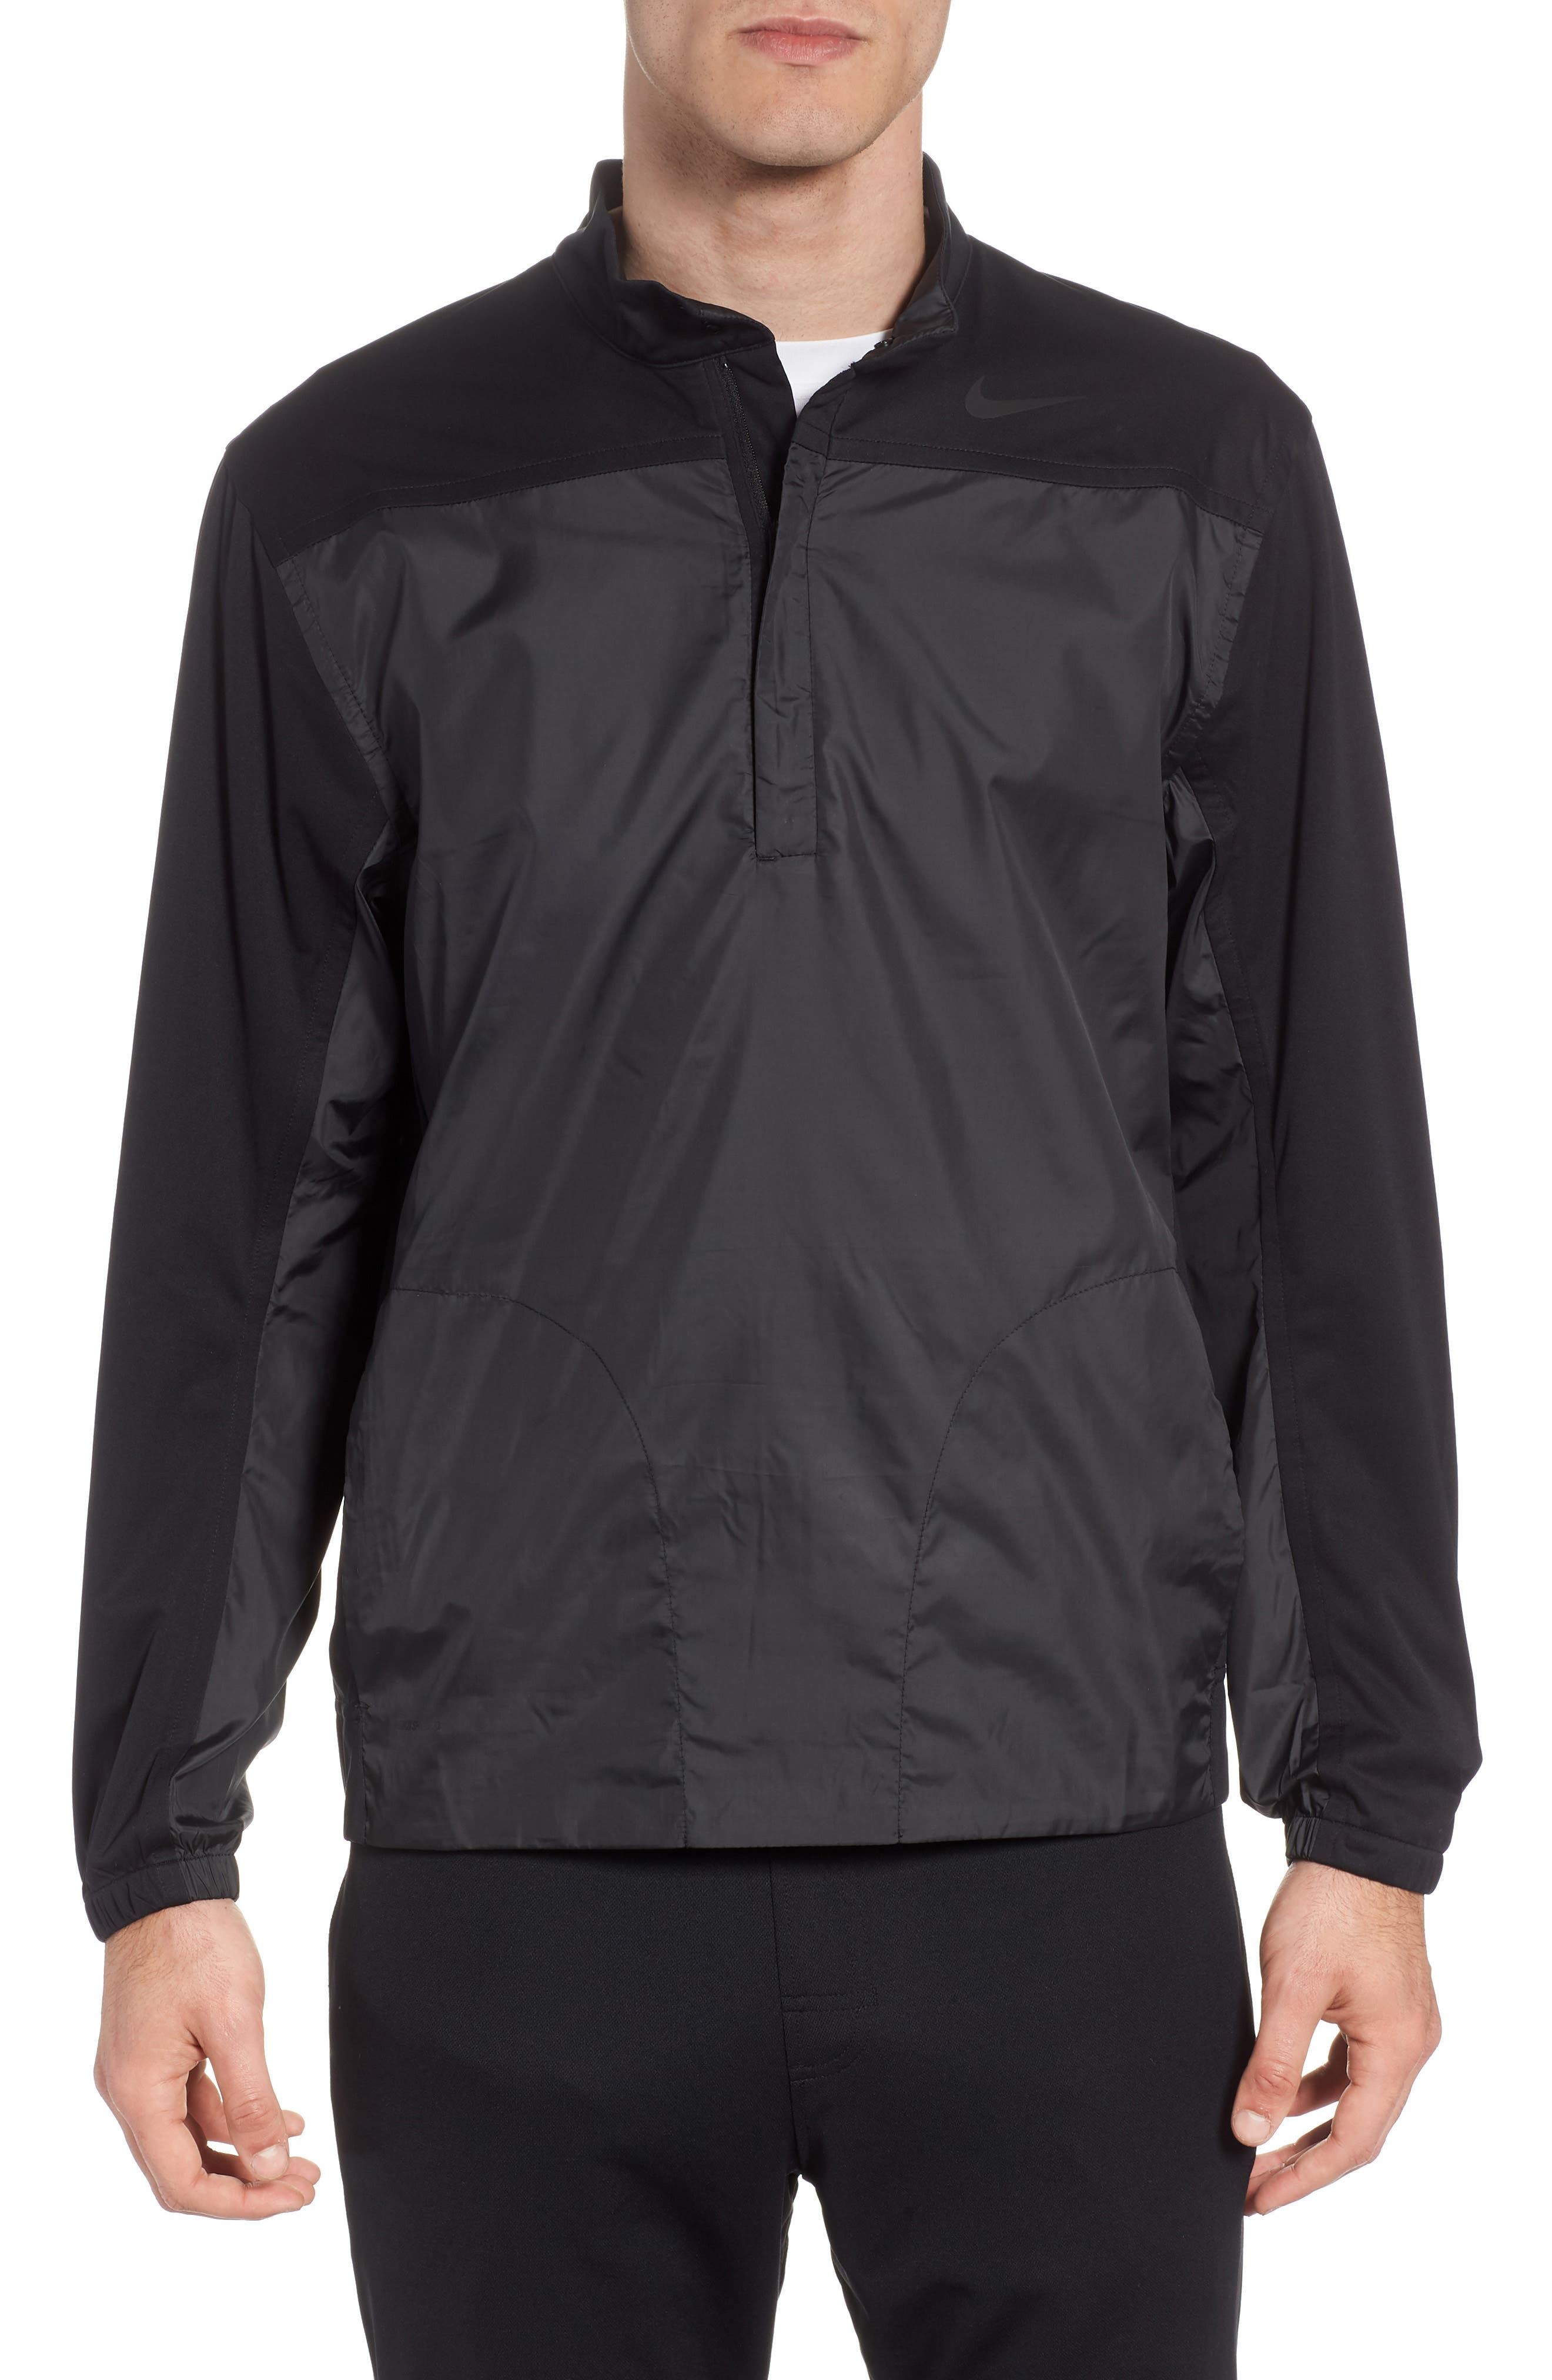 Shield Full Zip Golf Jacket,                         Main,                         color,